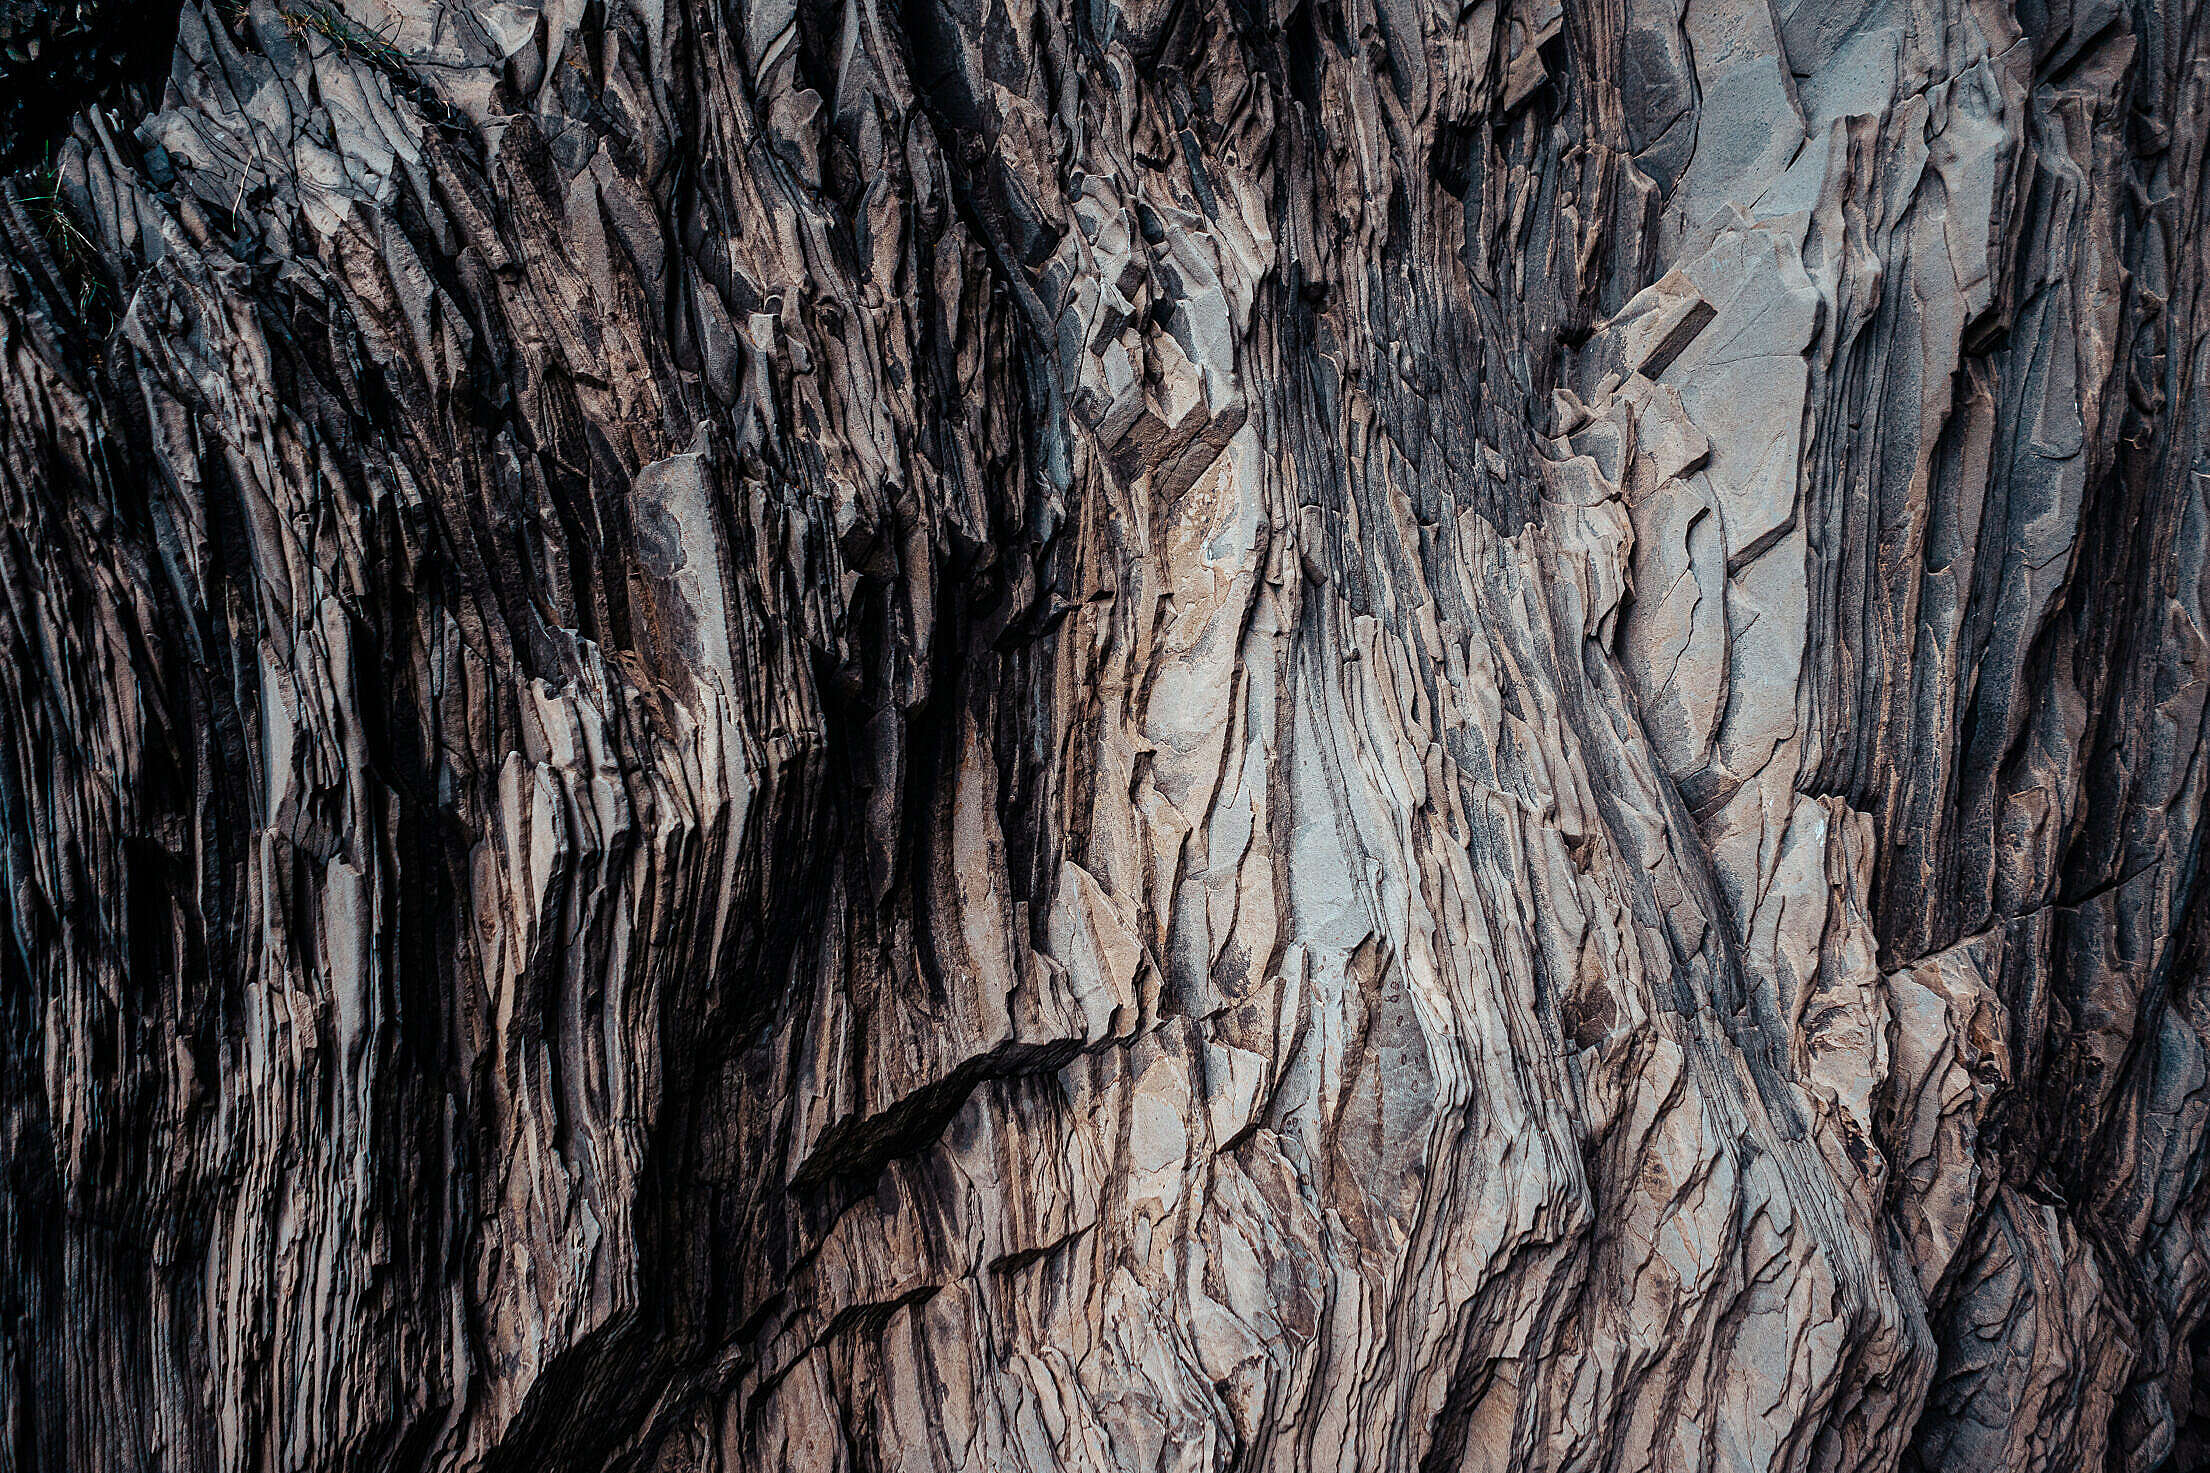 Texture of a Layered Dark Rock Free Stock Photo